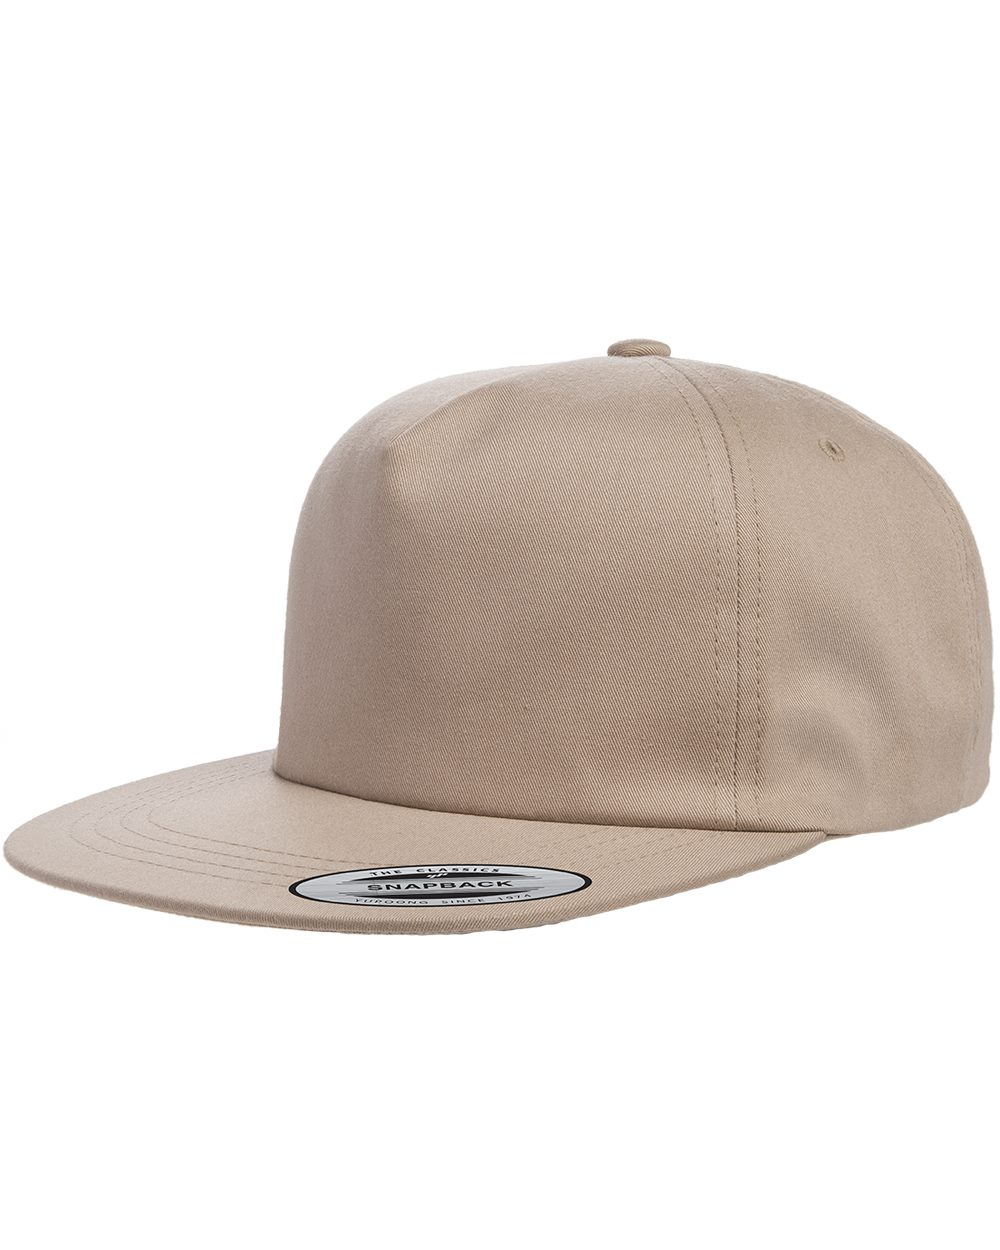 Yupoong 6502 - Unstructured Five-Panel Snapback Cap